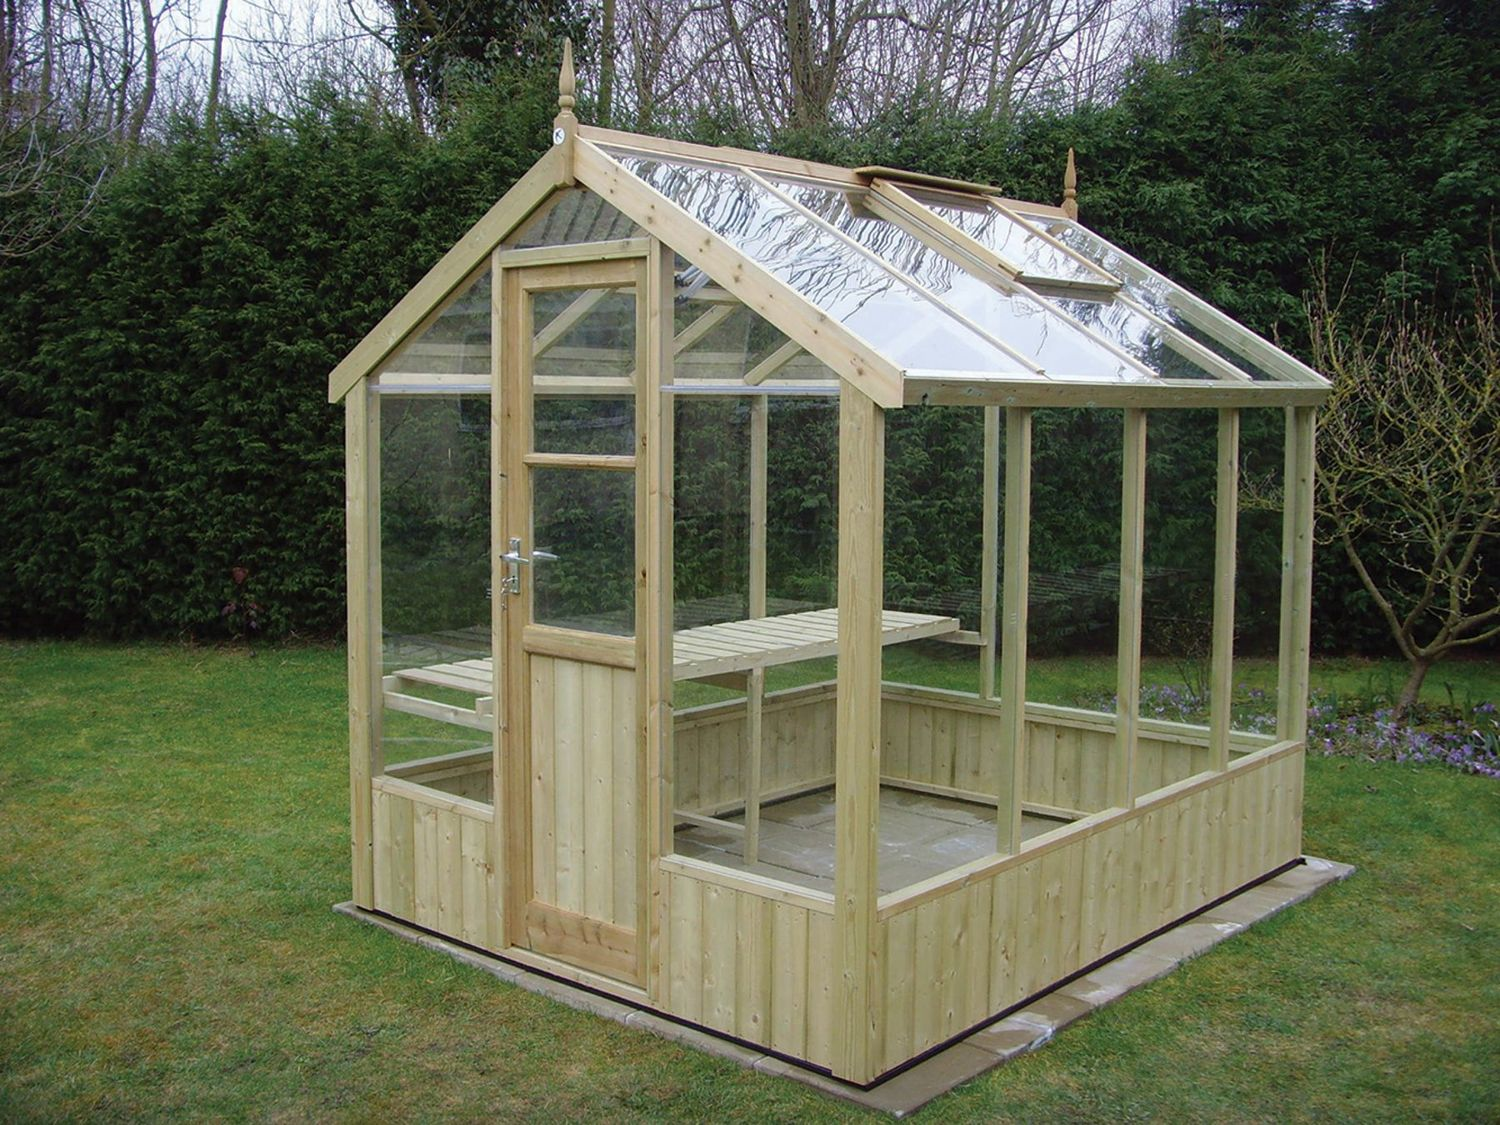 Swallow kingfisher 6x8 wooden greenhouse greenhouse stores for Small wooden greenhouse plans